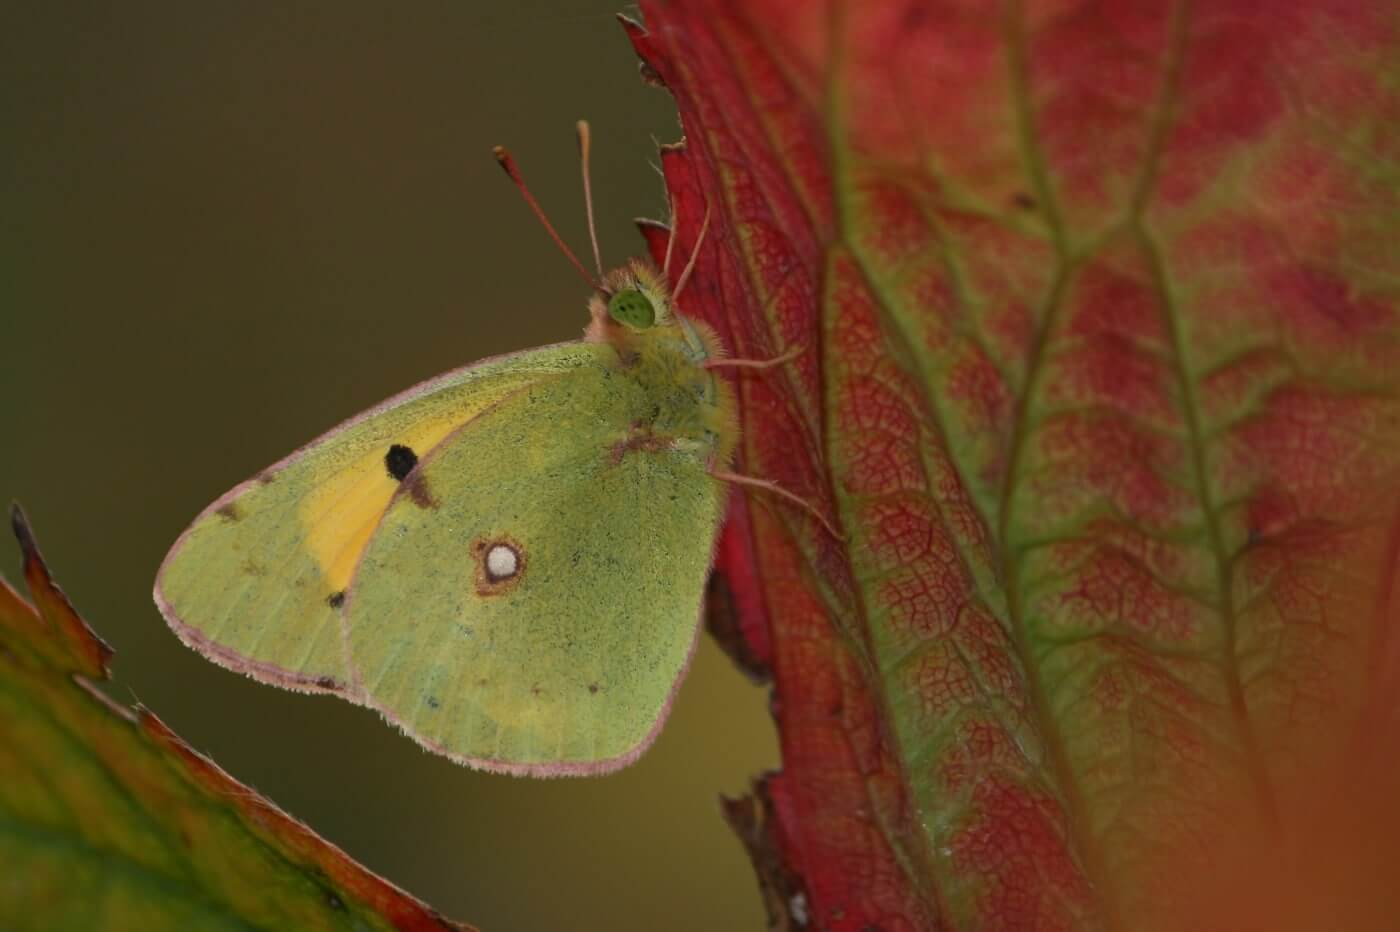 Northern Clouded Yellow. Photo by Dean Morley